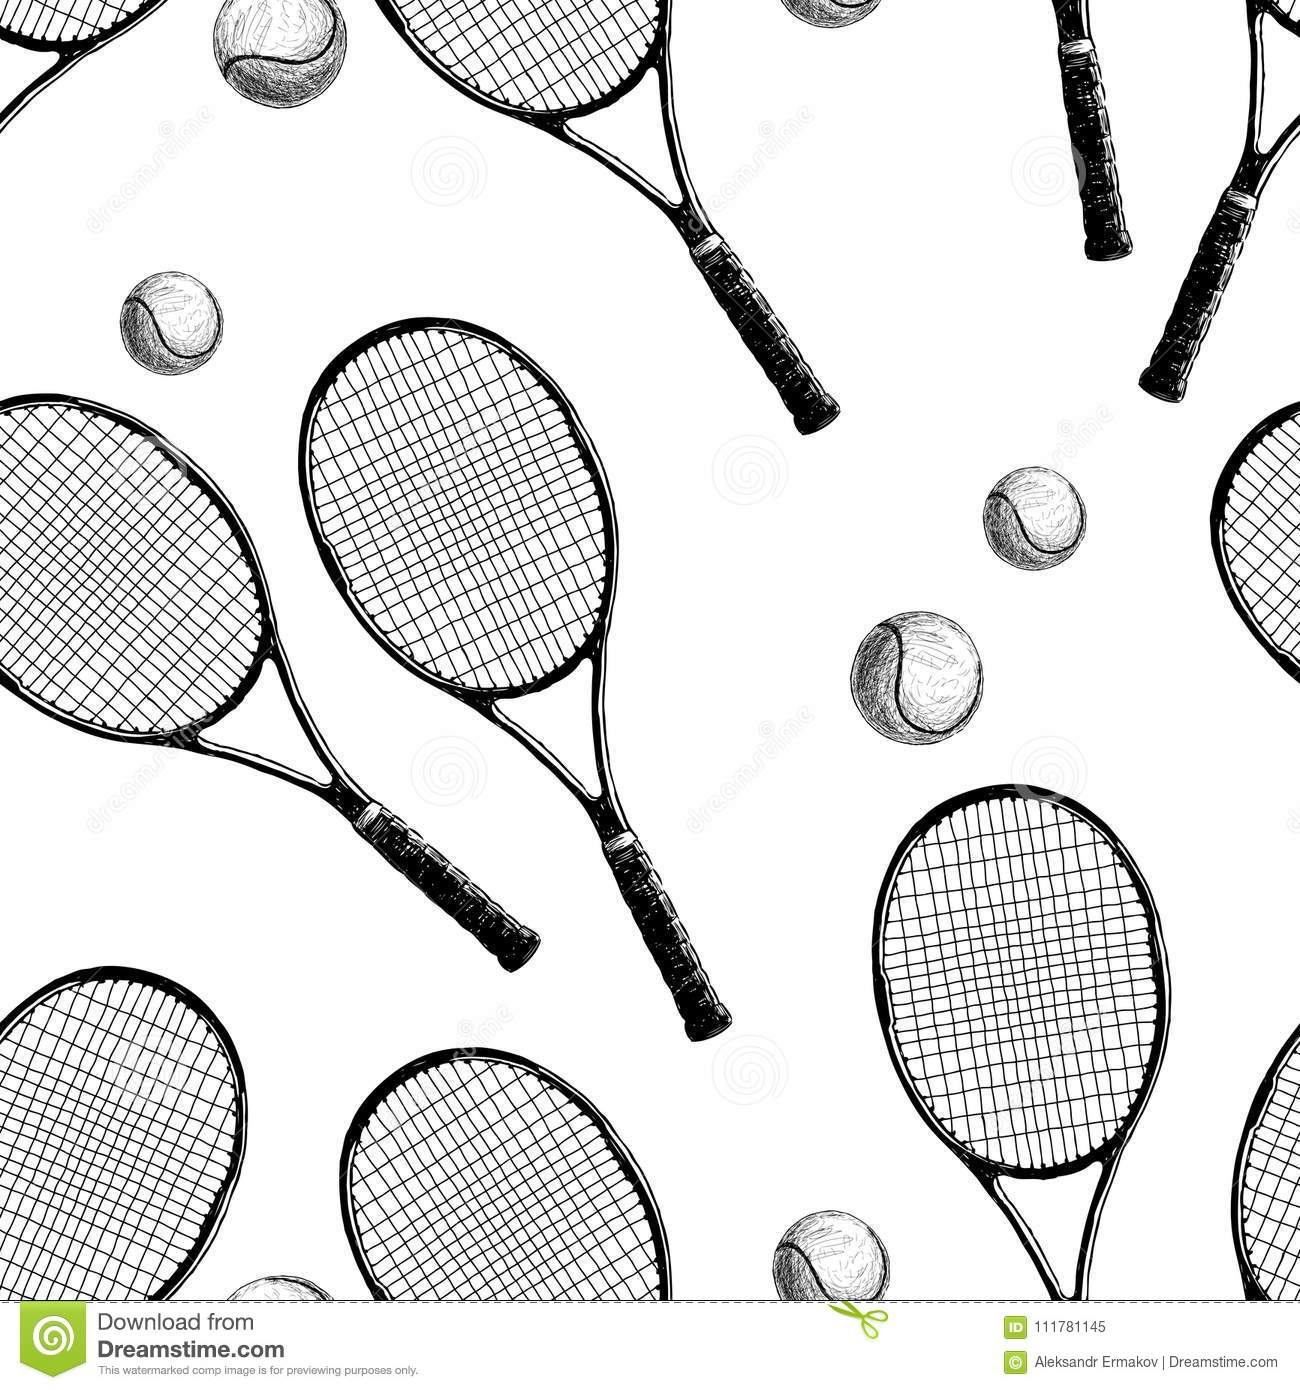 Pattern of tennis rackets with balls